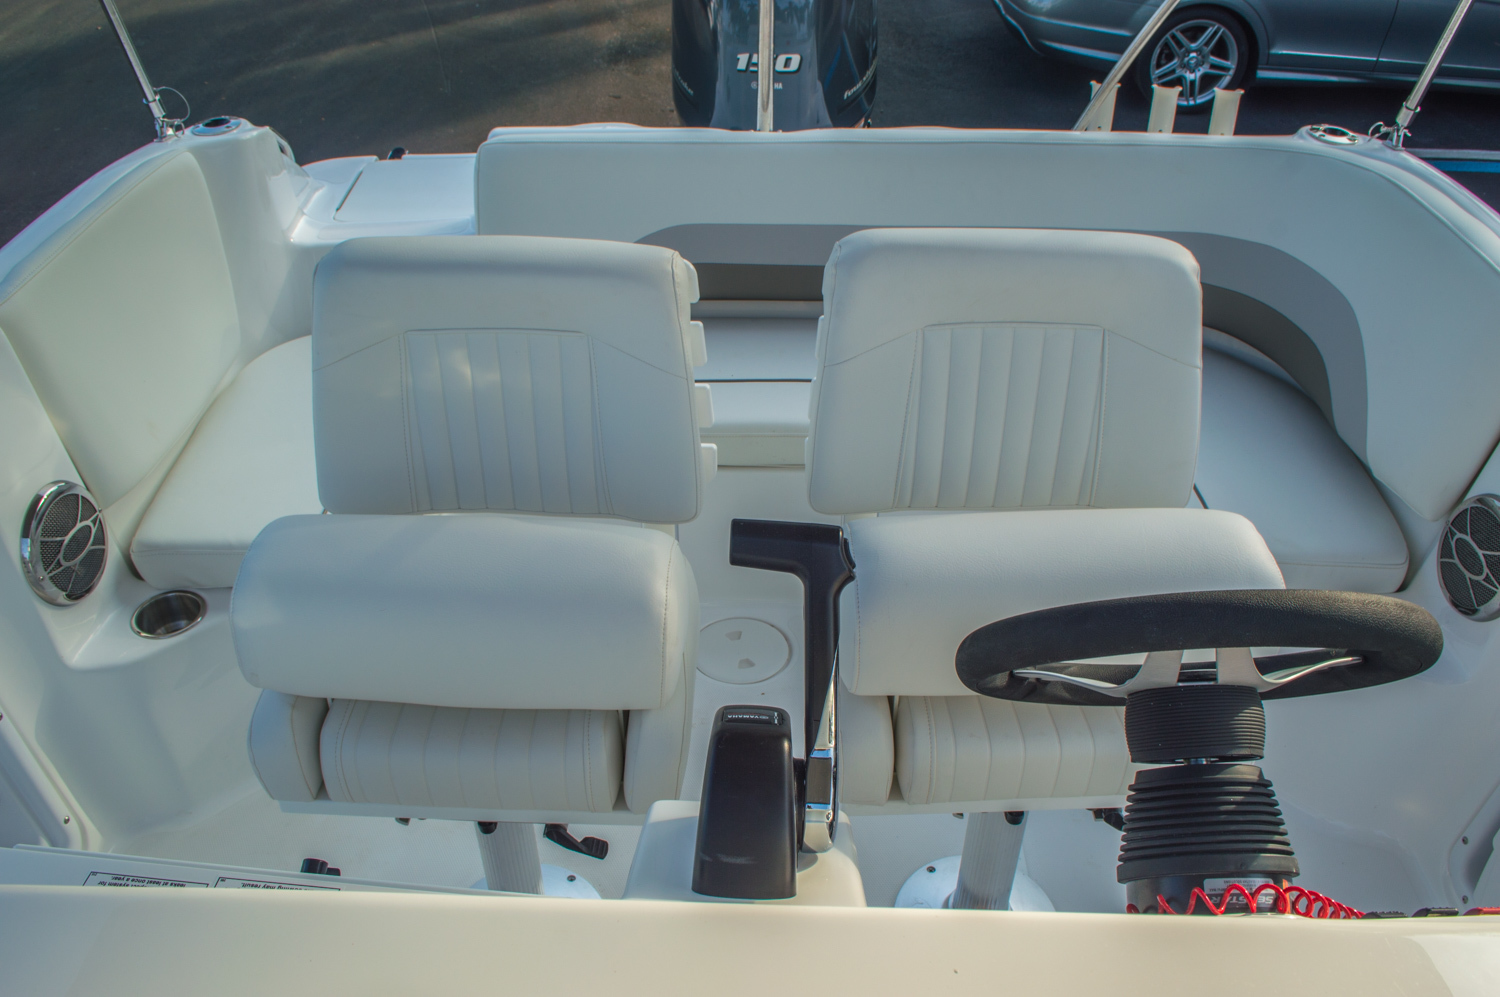 Thumbnail 12 for New 2016 Hurricane CC211 Center Consle boat for sale in West Palm Beach, FL